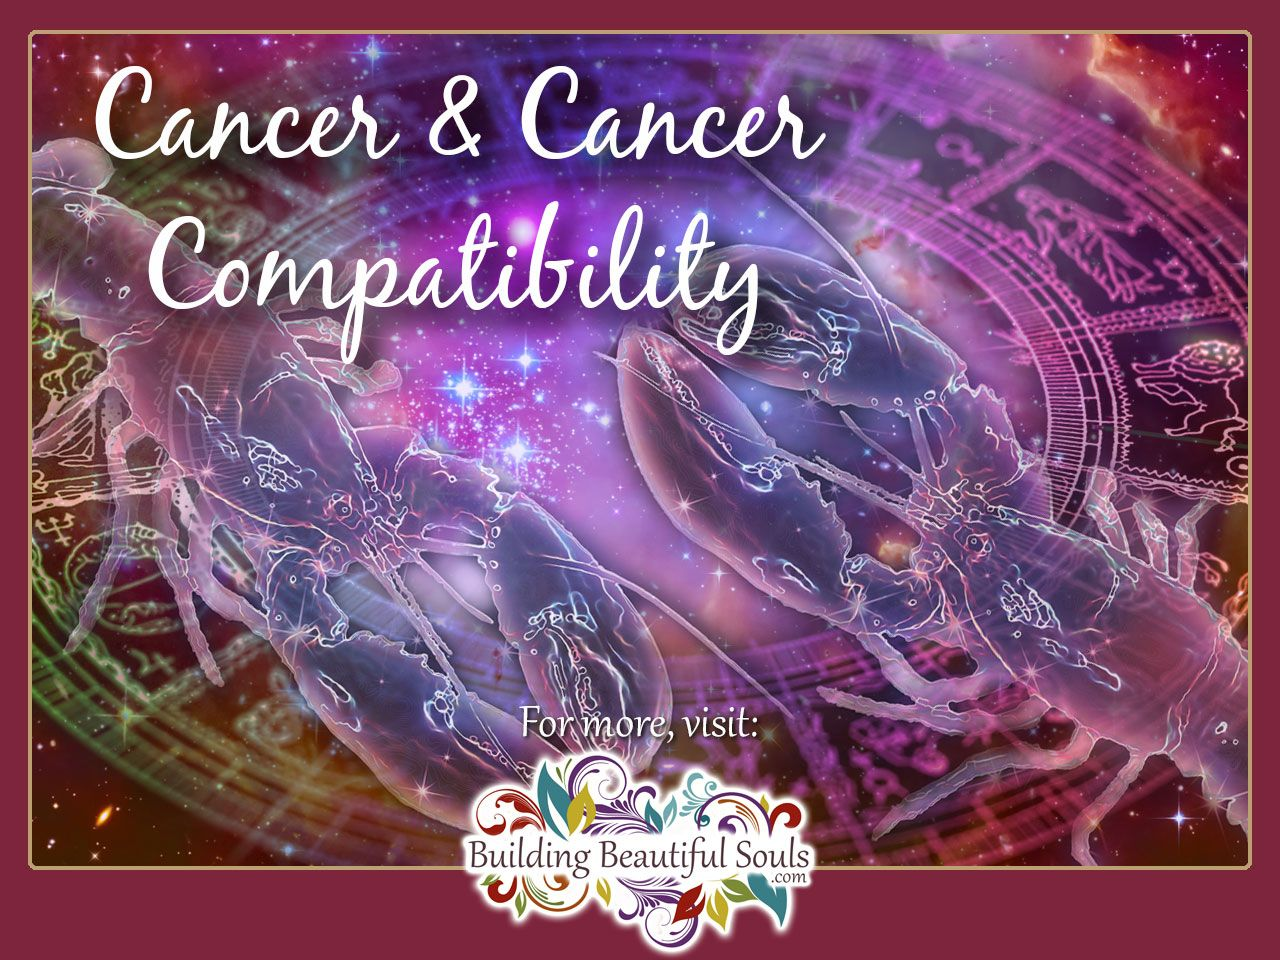 Cancer and Cancer 1280x960